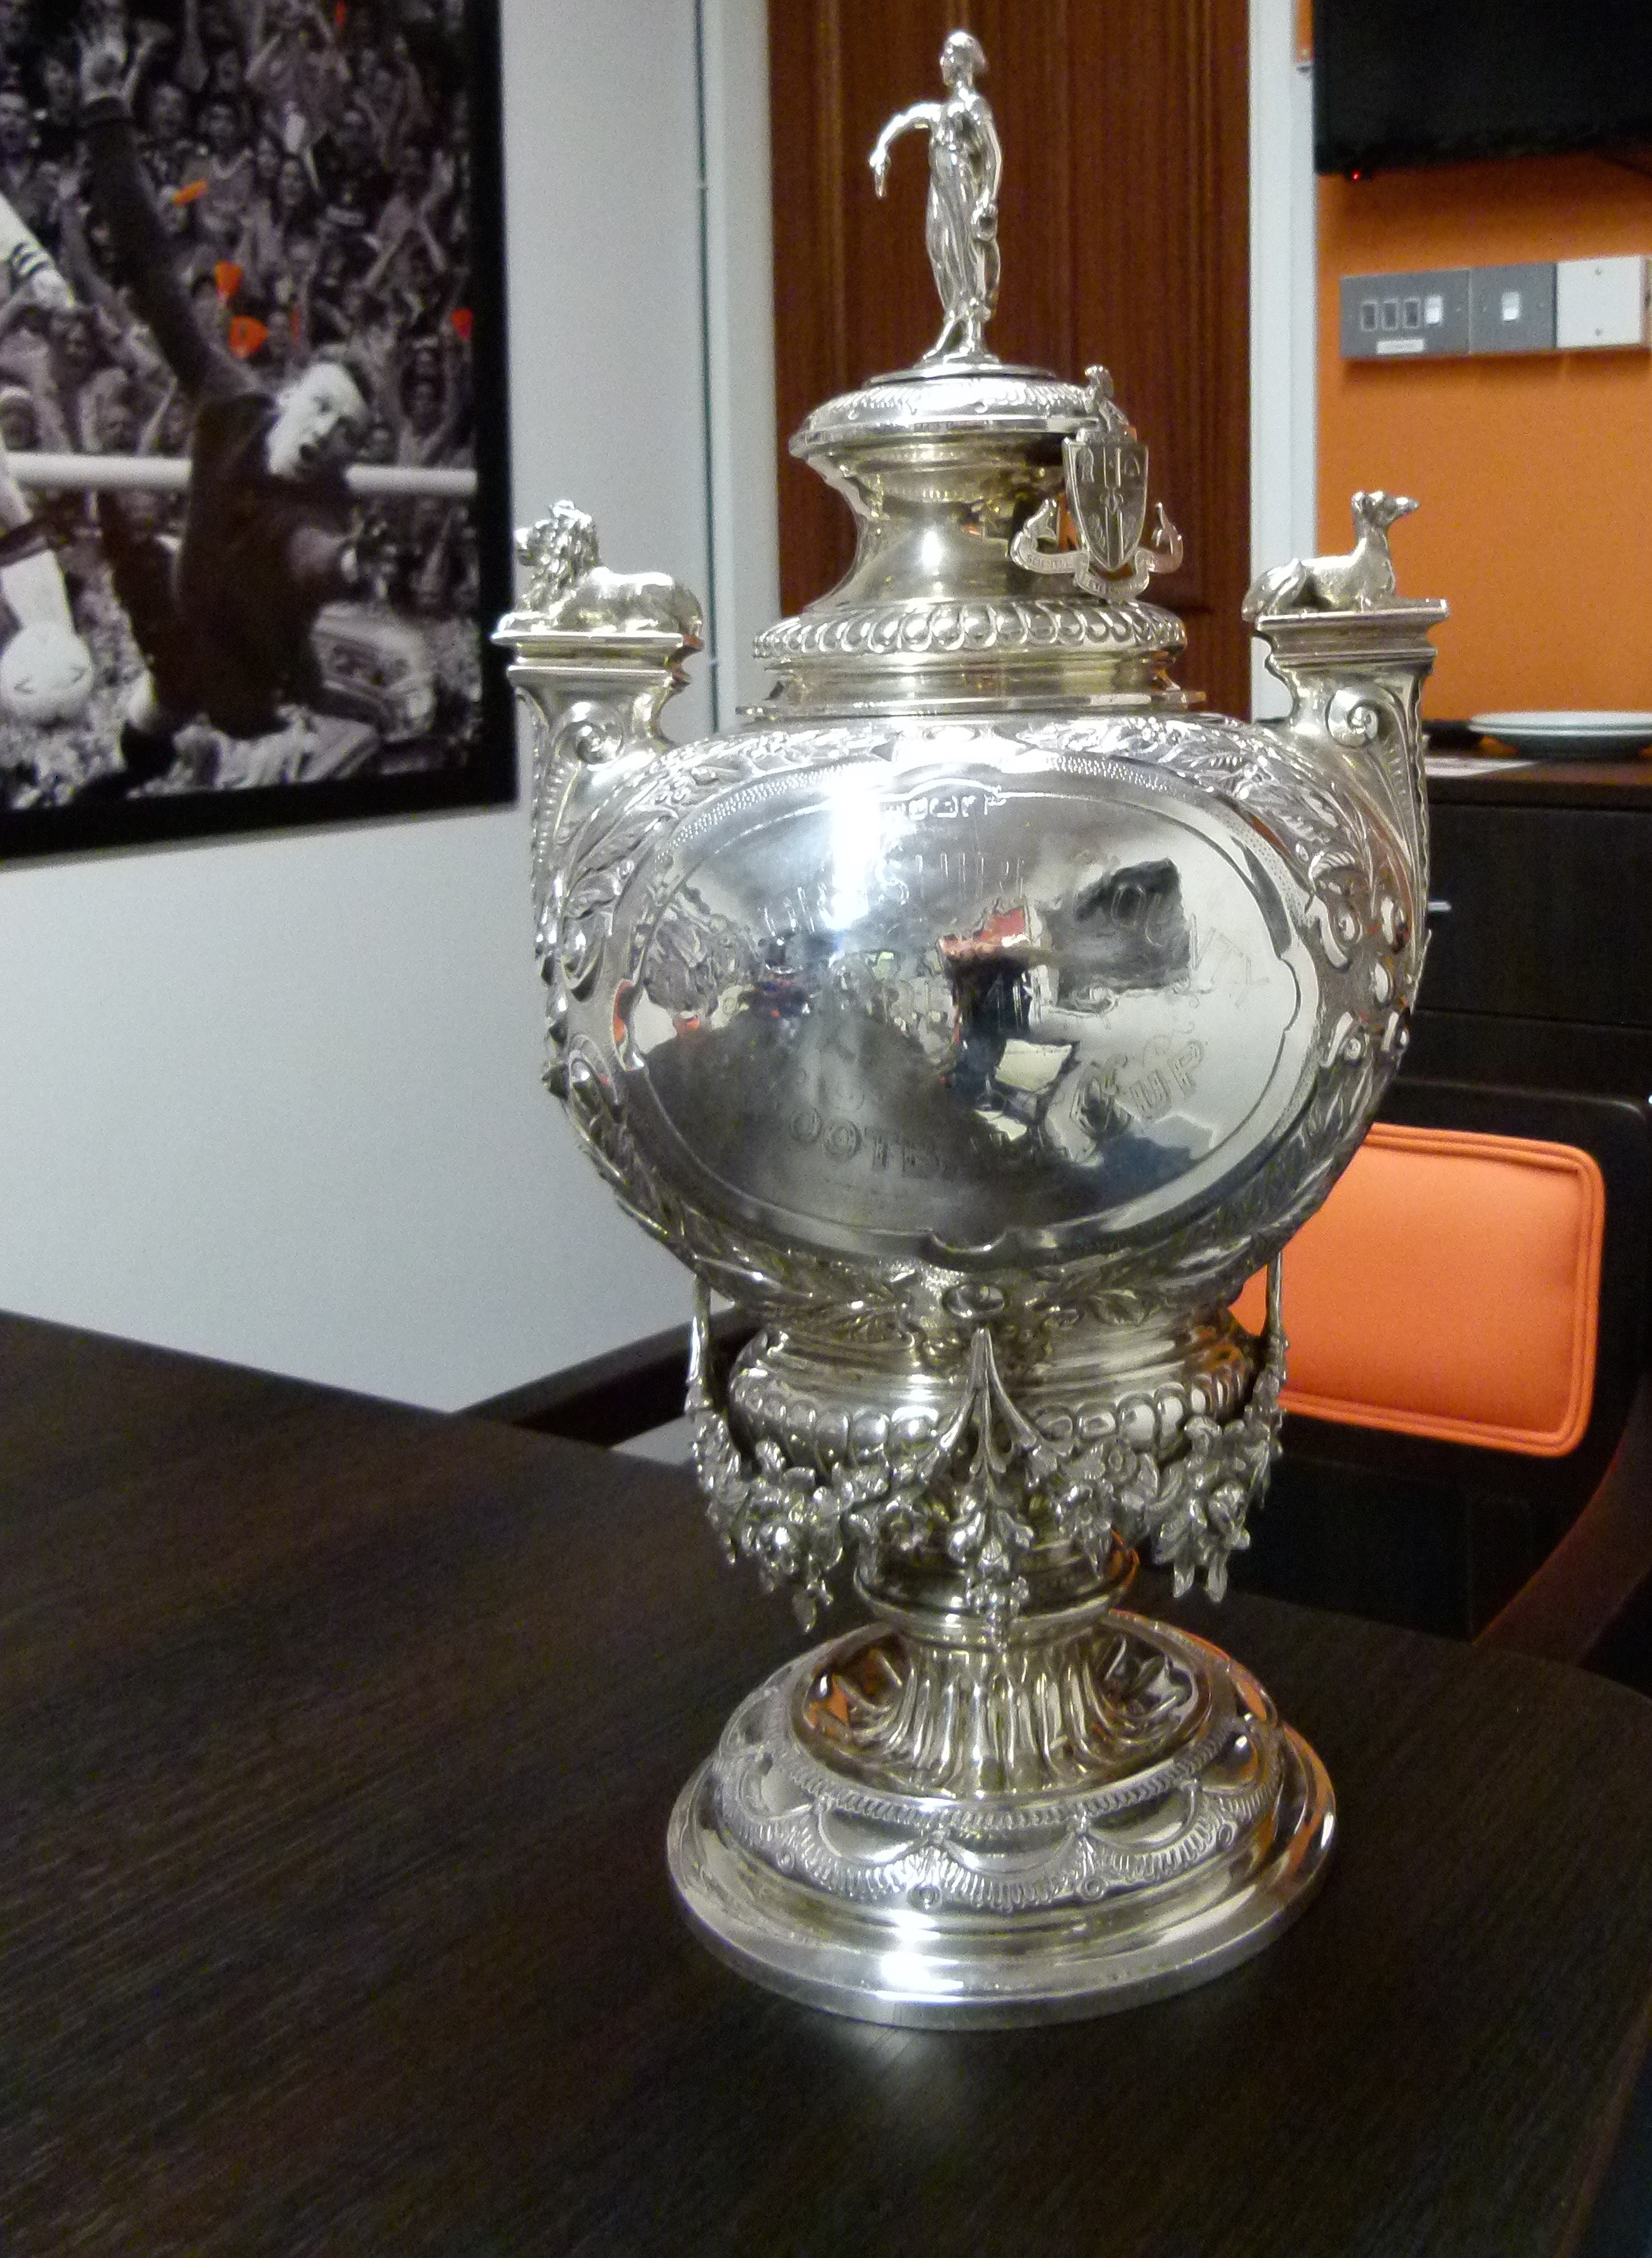 Luton Charity Cup